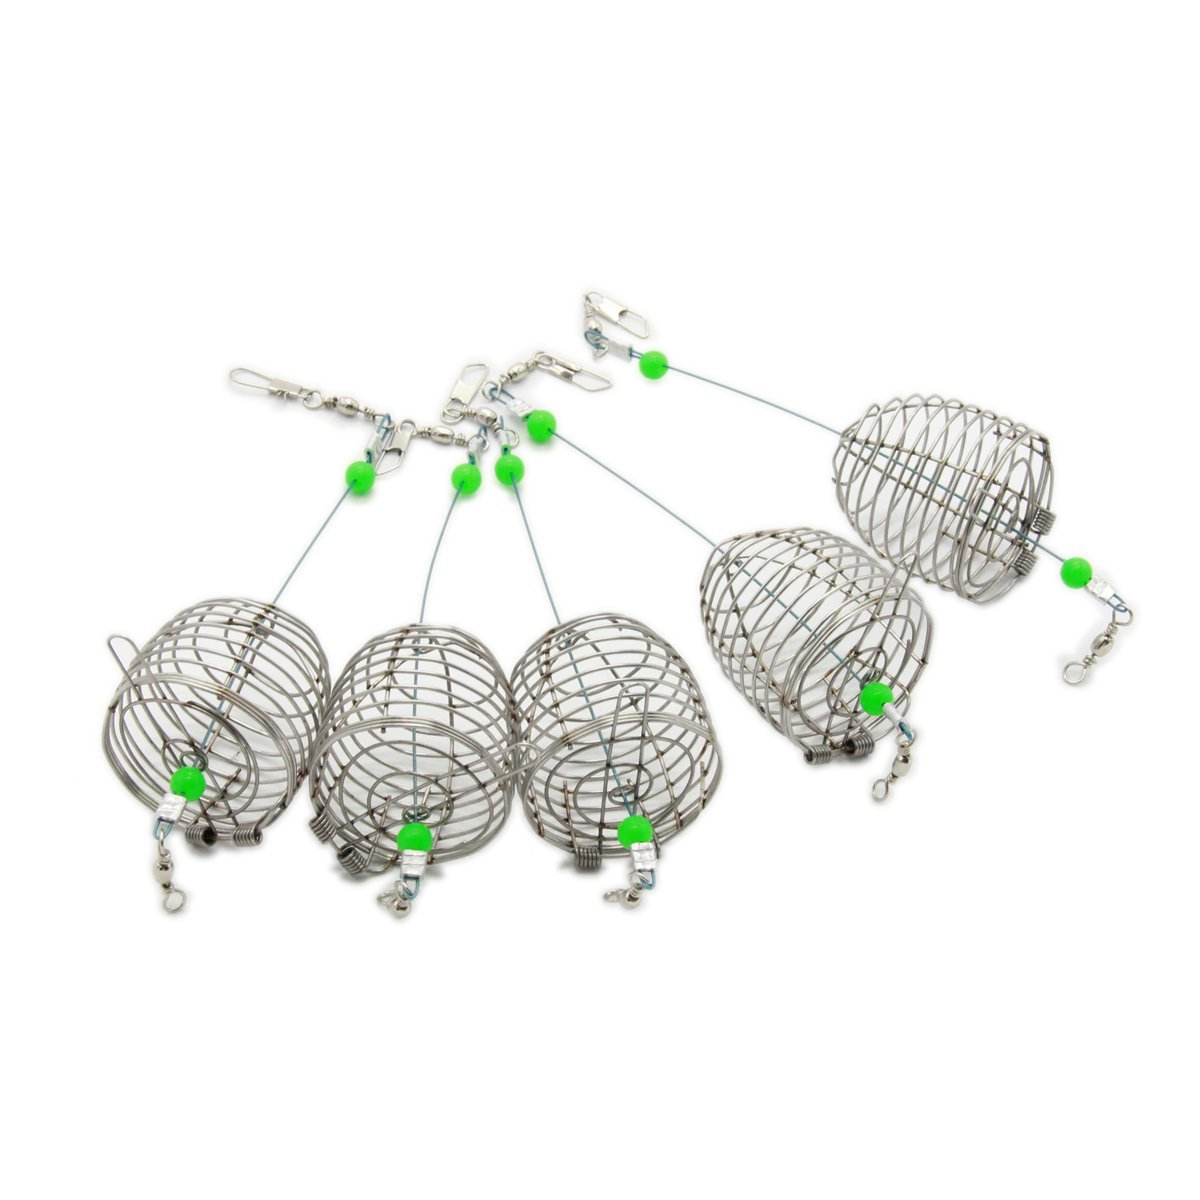 bouti1583 Fishing Bait Trap Cage Feeder Basket Holder Lure Fish Accessories 5 Pcs